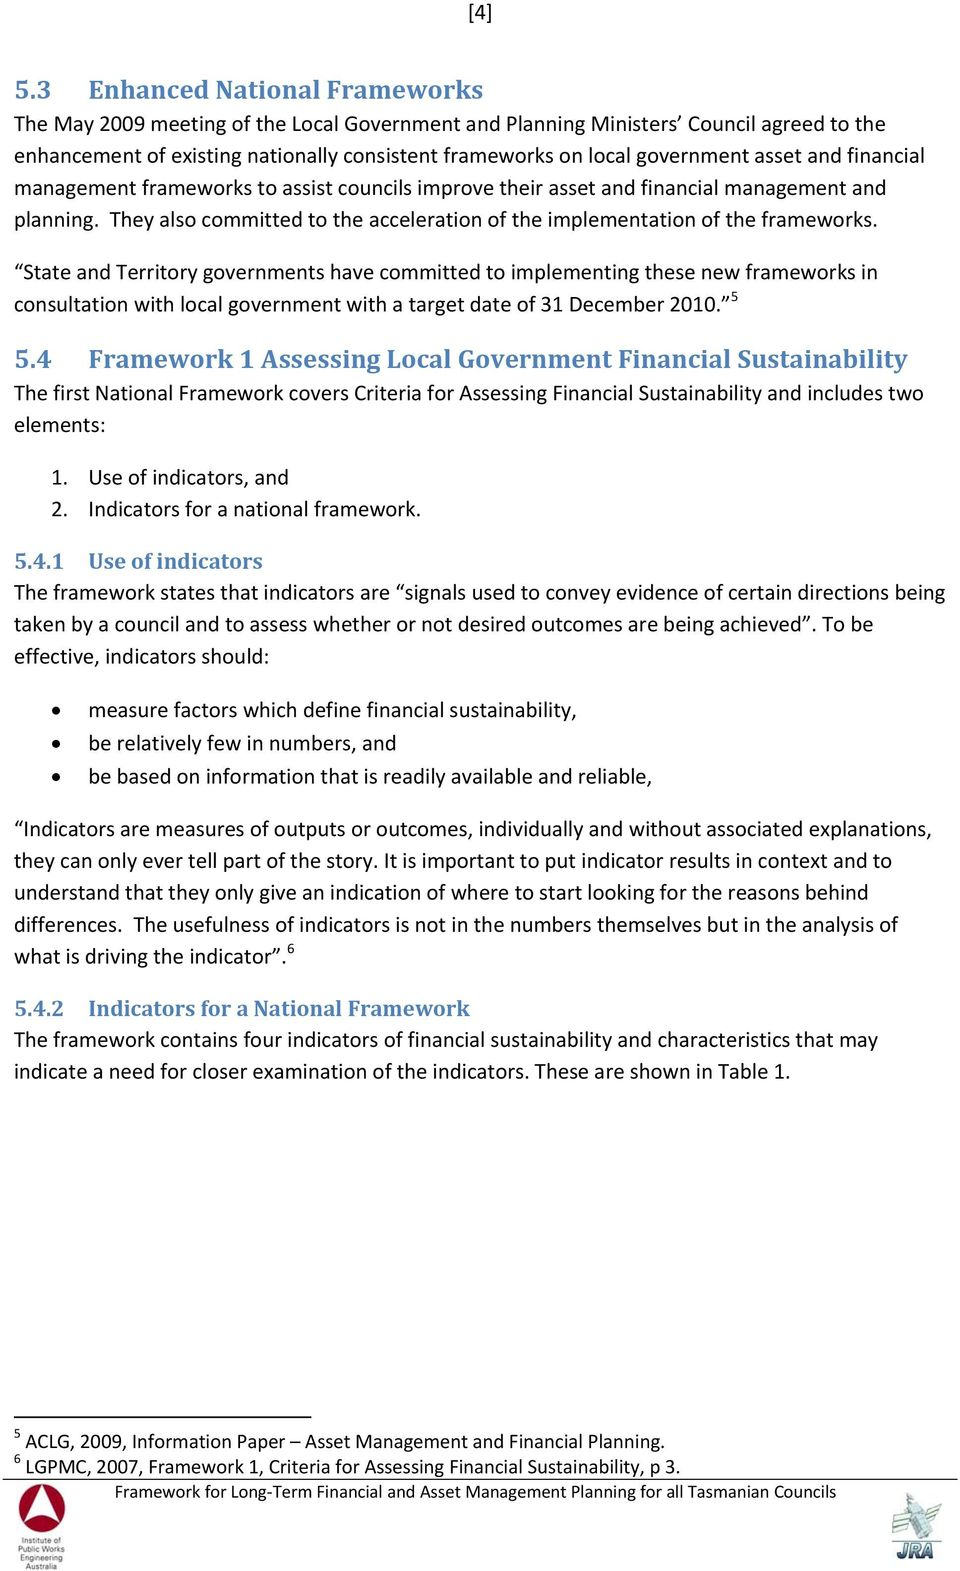 asset and financial management frameworks to assist councils improve their asset and financial management and planning. They also committed to the acceleration of the implementation of the frameworks.